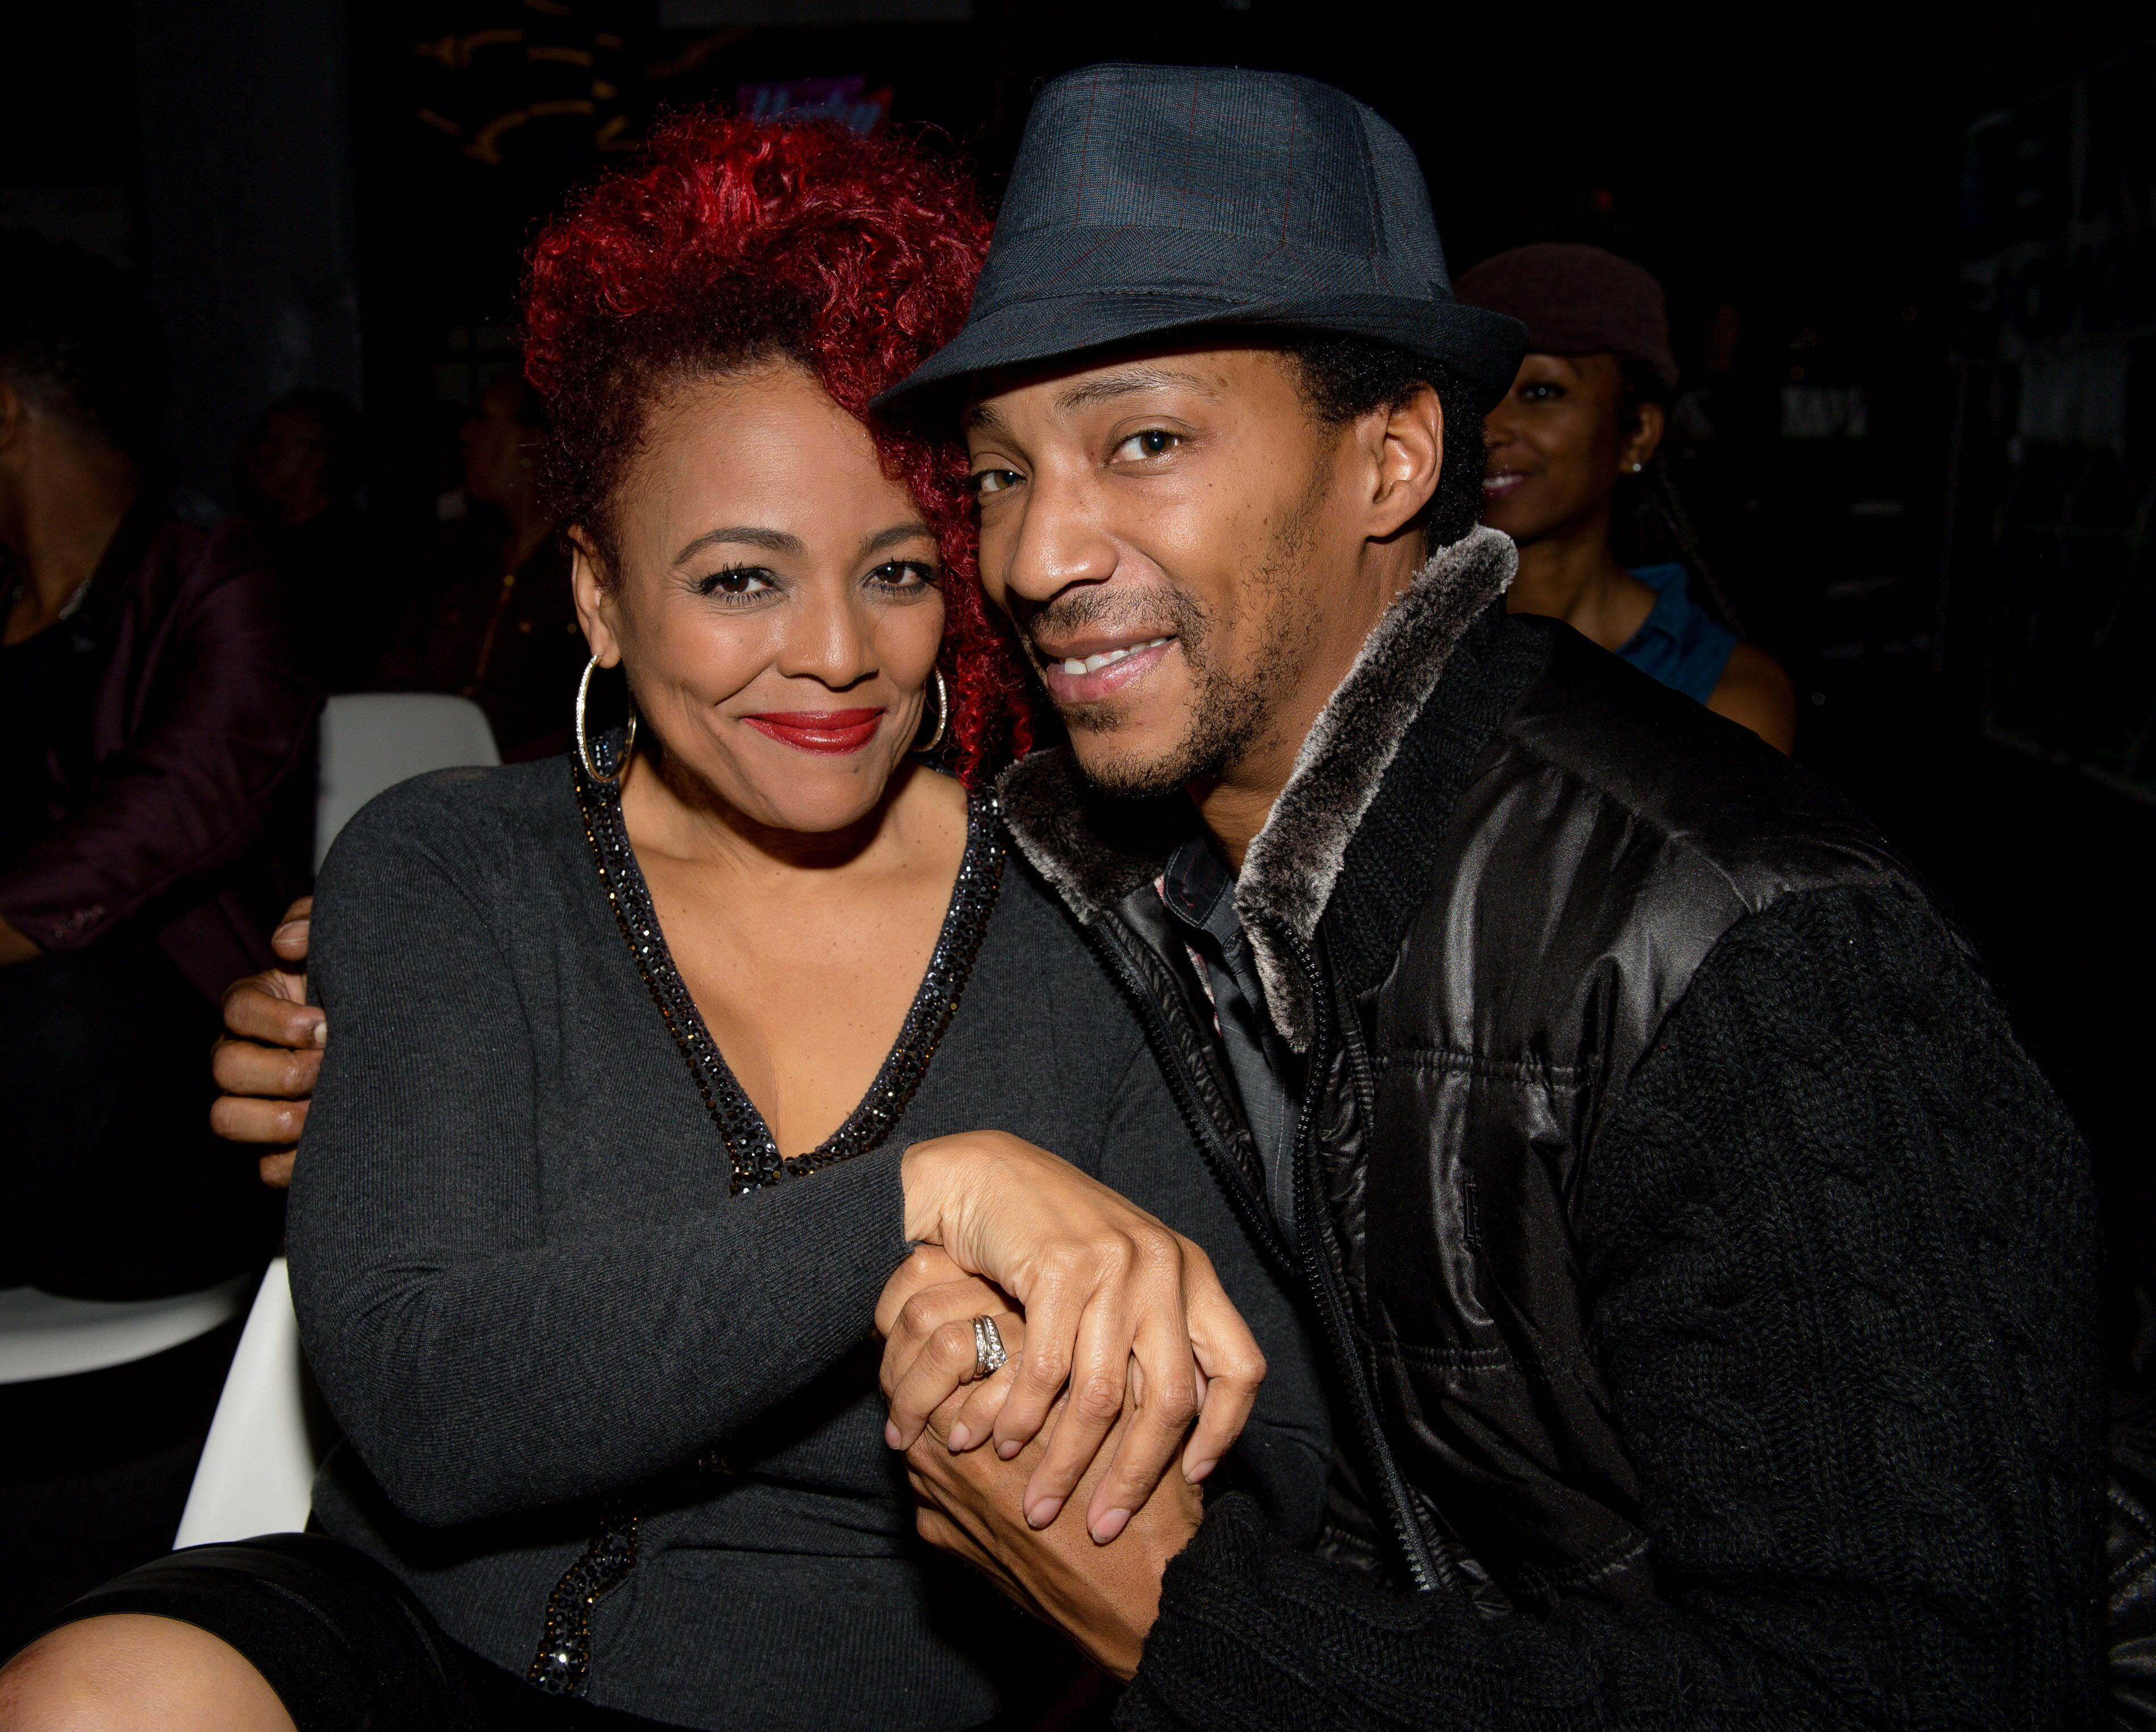 """Kim Fields & Christopher Morgan at the """"Happily After All"""" Book Release Celebration on Feb. 16, 2017 in Georgia. 